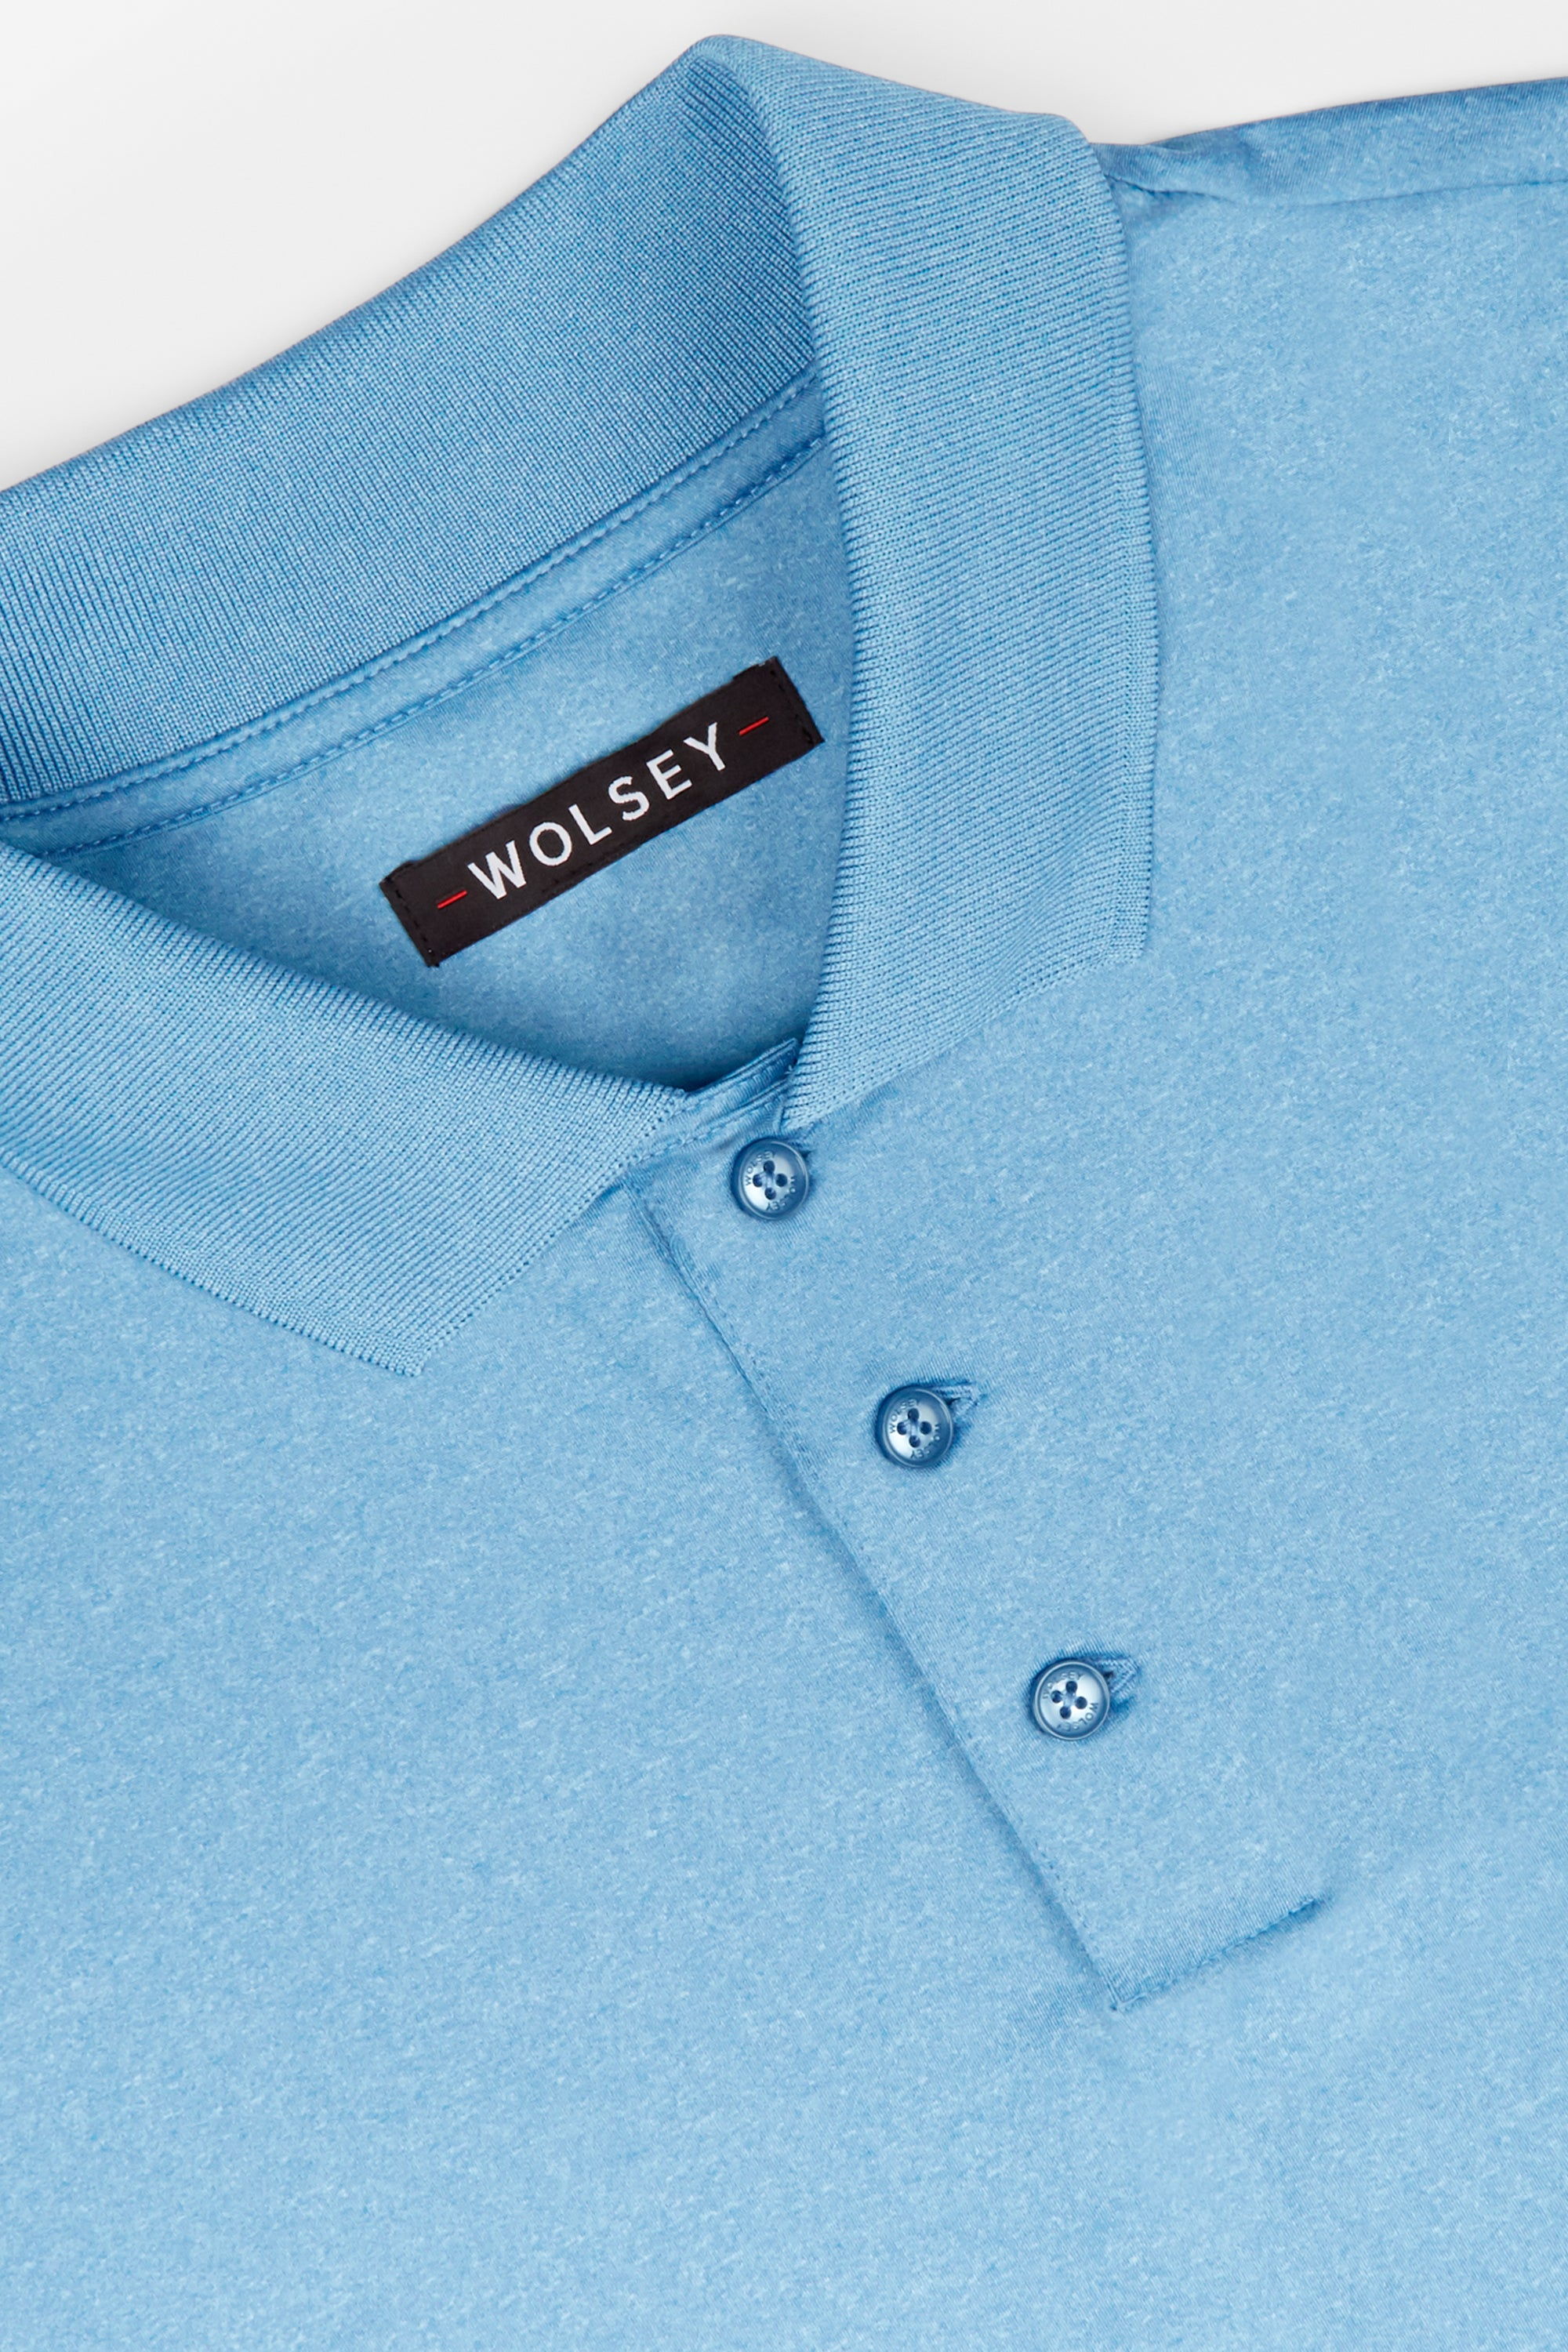 024ea2ca3 Riviera Temperature Regulating Jersey Polo — Wolsey